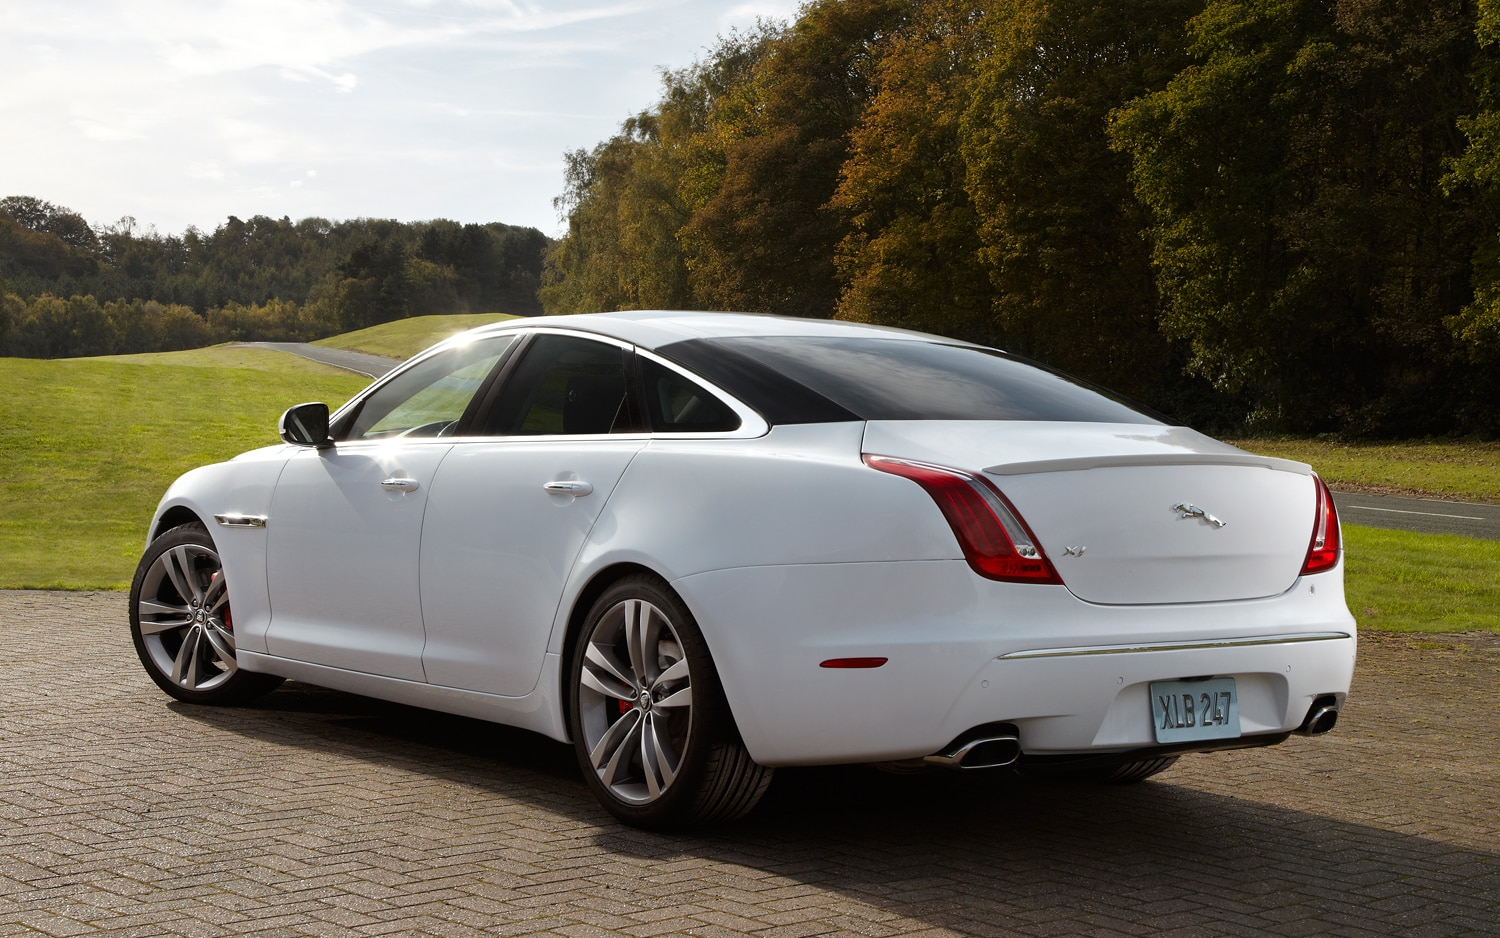 Startech Dresses Up 2012 Jaguar XJ Sedan